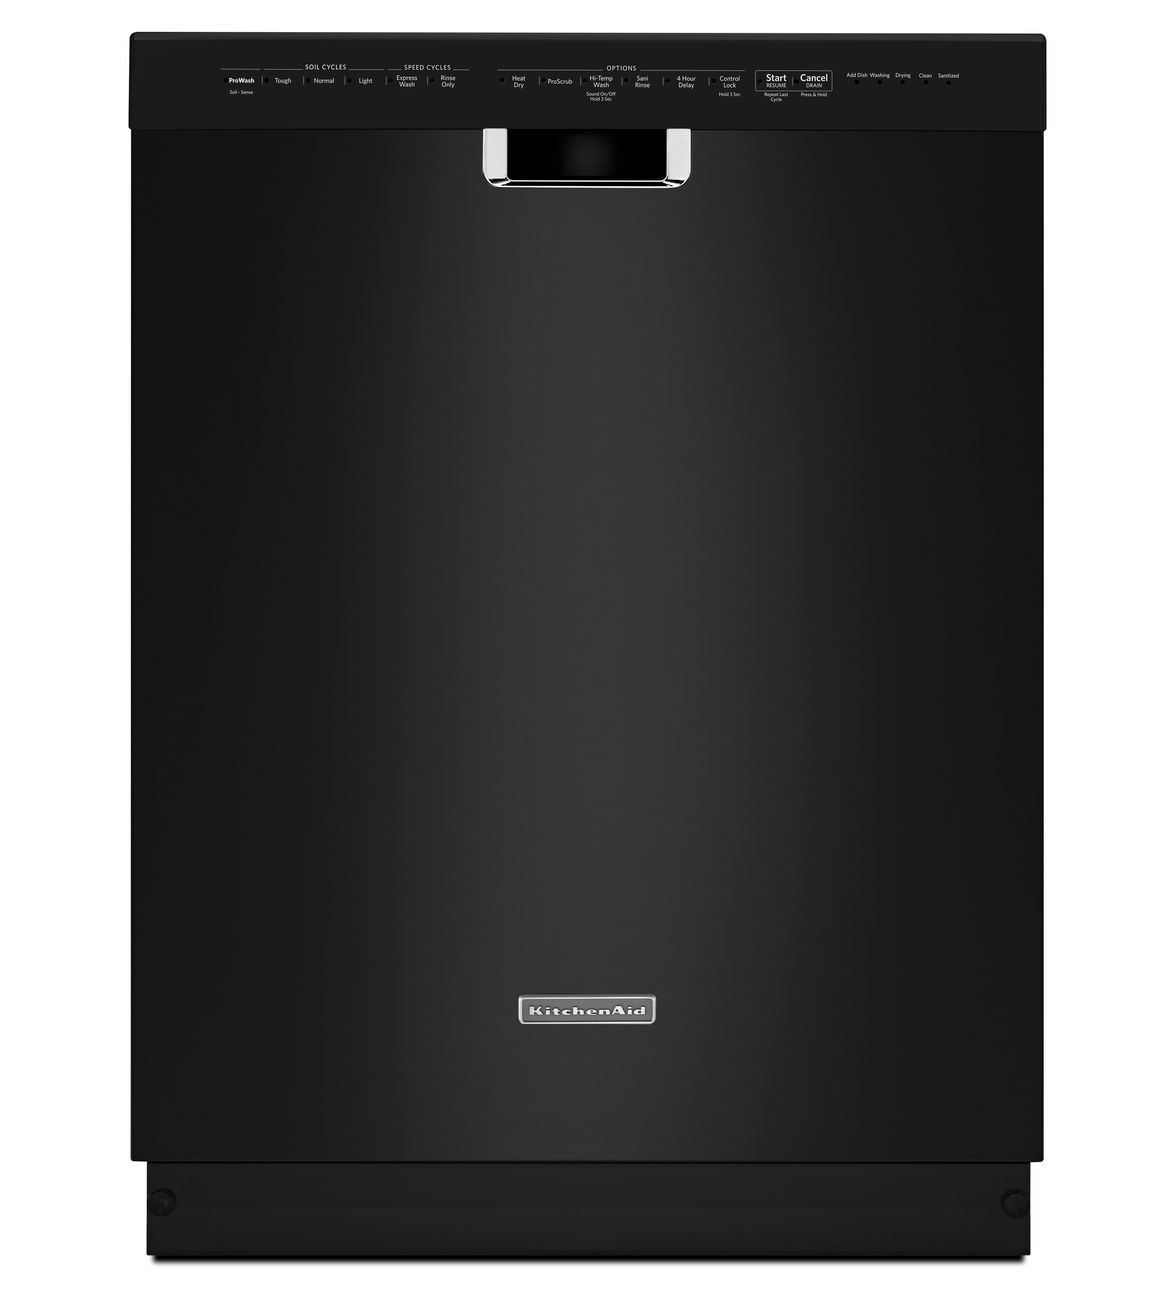 Kitchenaid Whisper Quiet Dishwasher: KDFE304DBL Kitchenaid